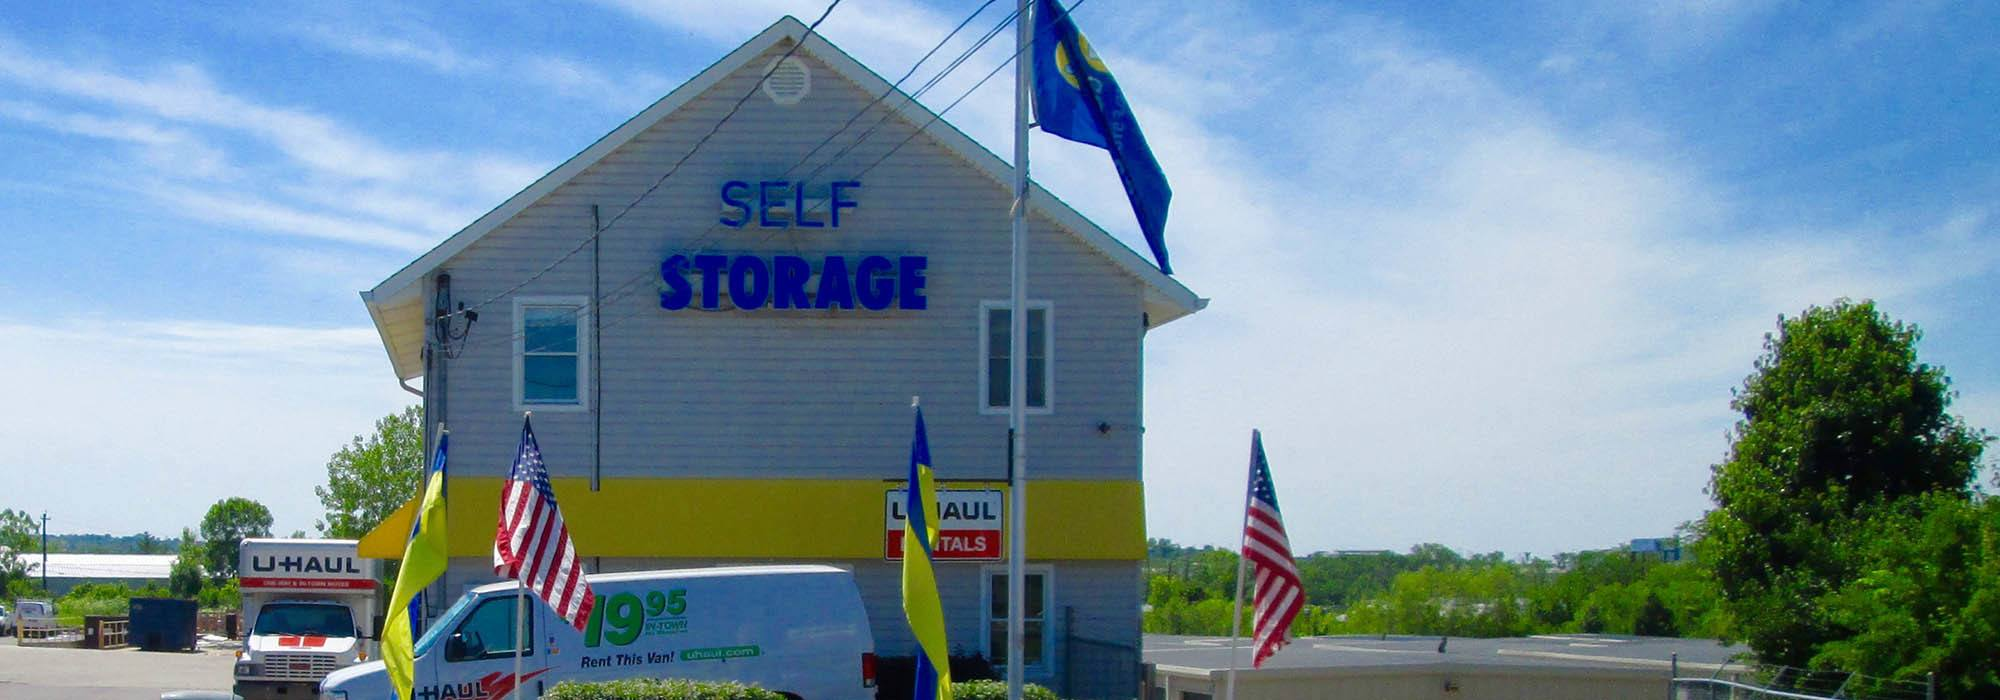 Self storage in Hamilton OH